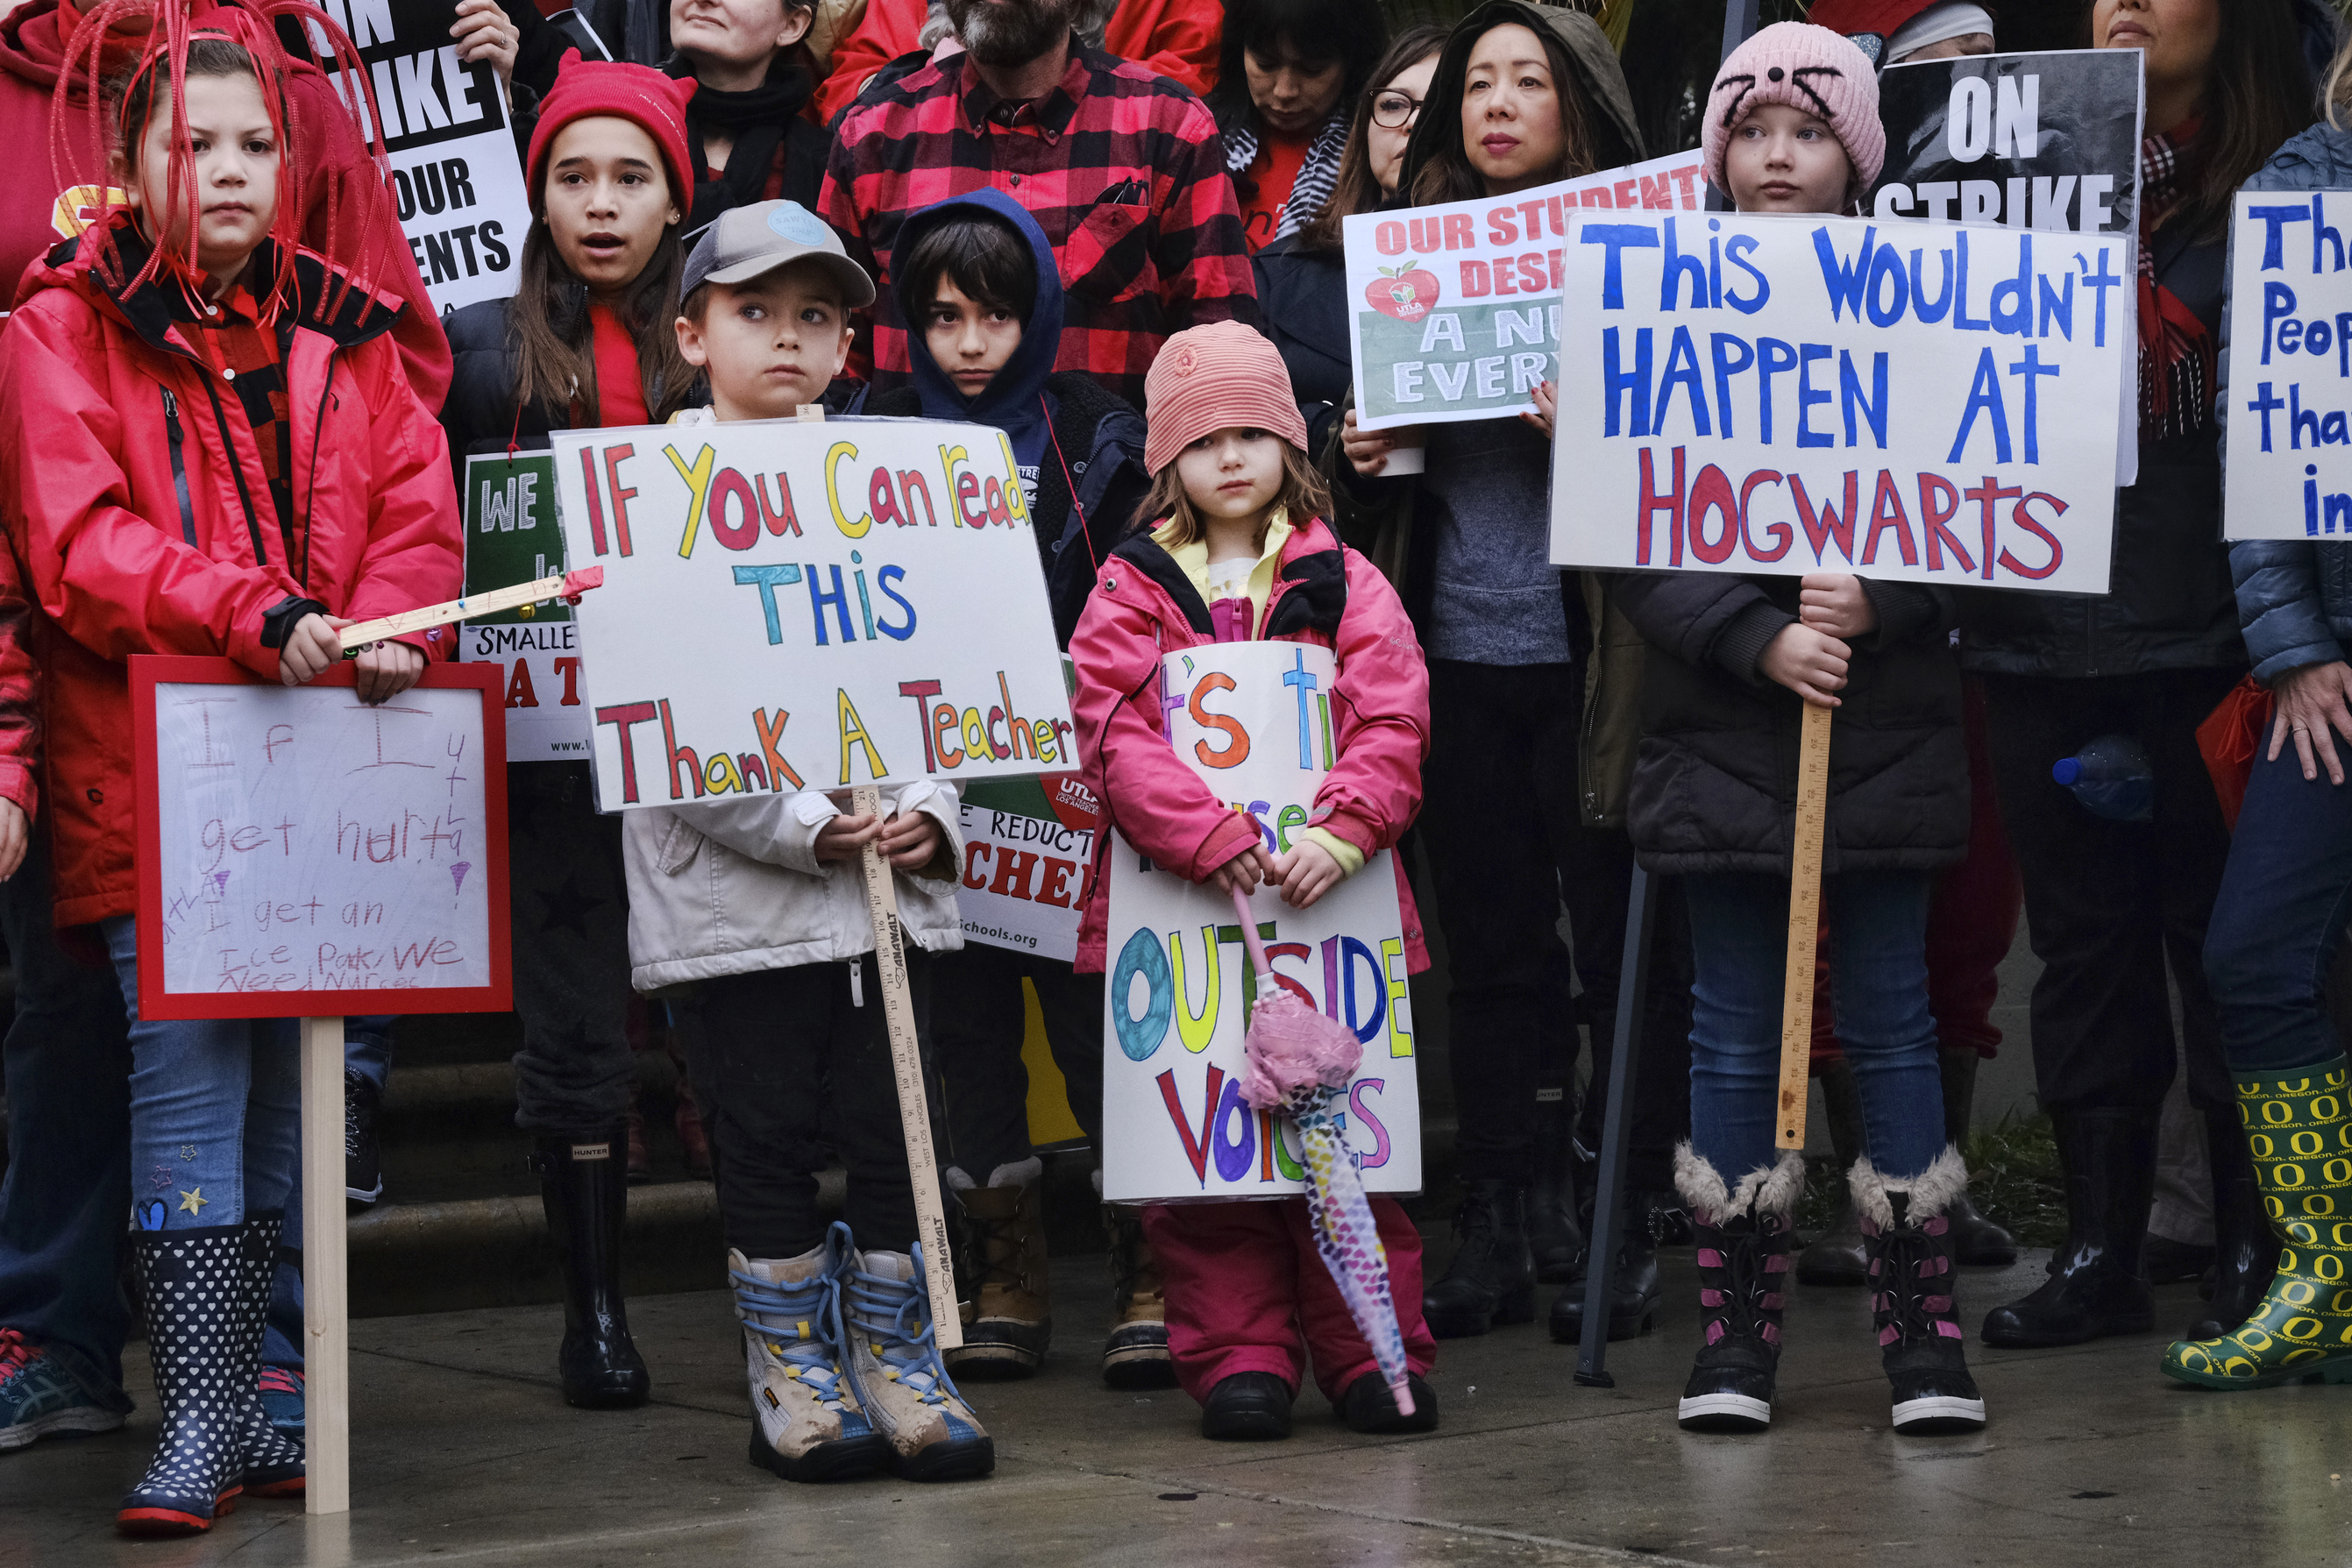 Elementary students, from right, Sawyer Mack is joined by his sisters, Capri and Kaya in support of a teachers strike in front of Hamilton High School  in Los Angeles on Wed. Jan. 16, 2019. Los Angeles school administrators urged the union to resume bargaining as tens of thousands of teachers planned to walk picket lines for a third day Wednesday, after being joined on strike for the first time by some of their counterparts from independent charter schools. (AP Photo/Richard Vogel)